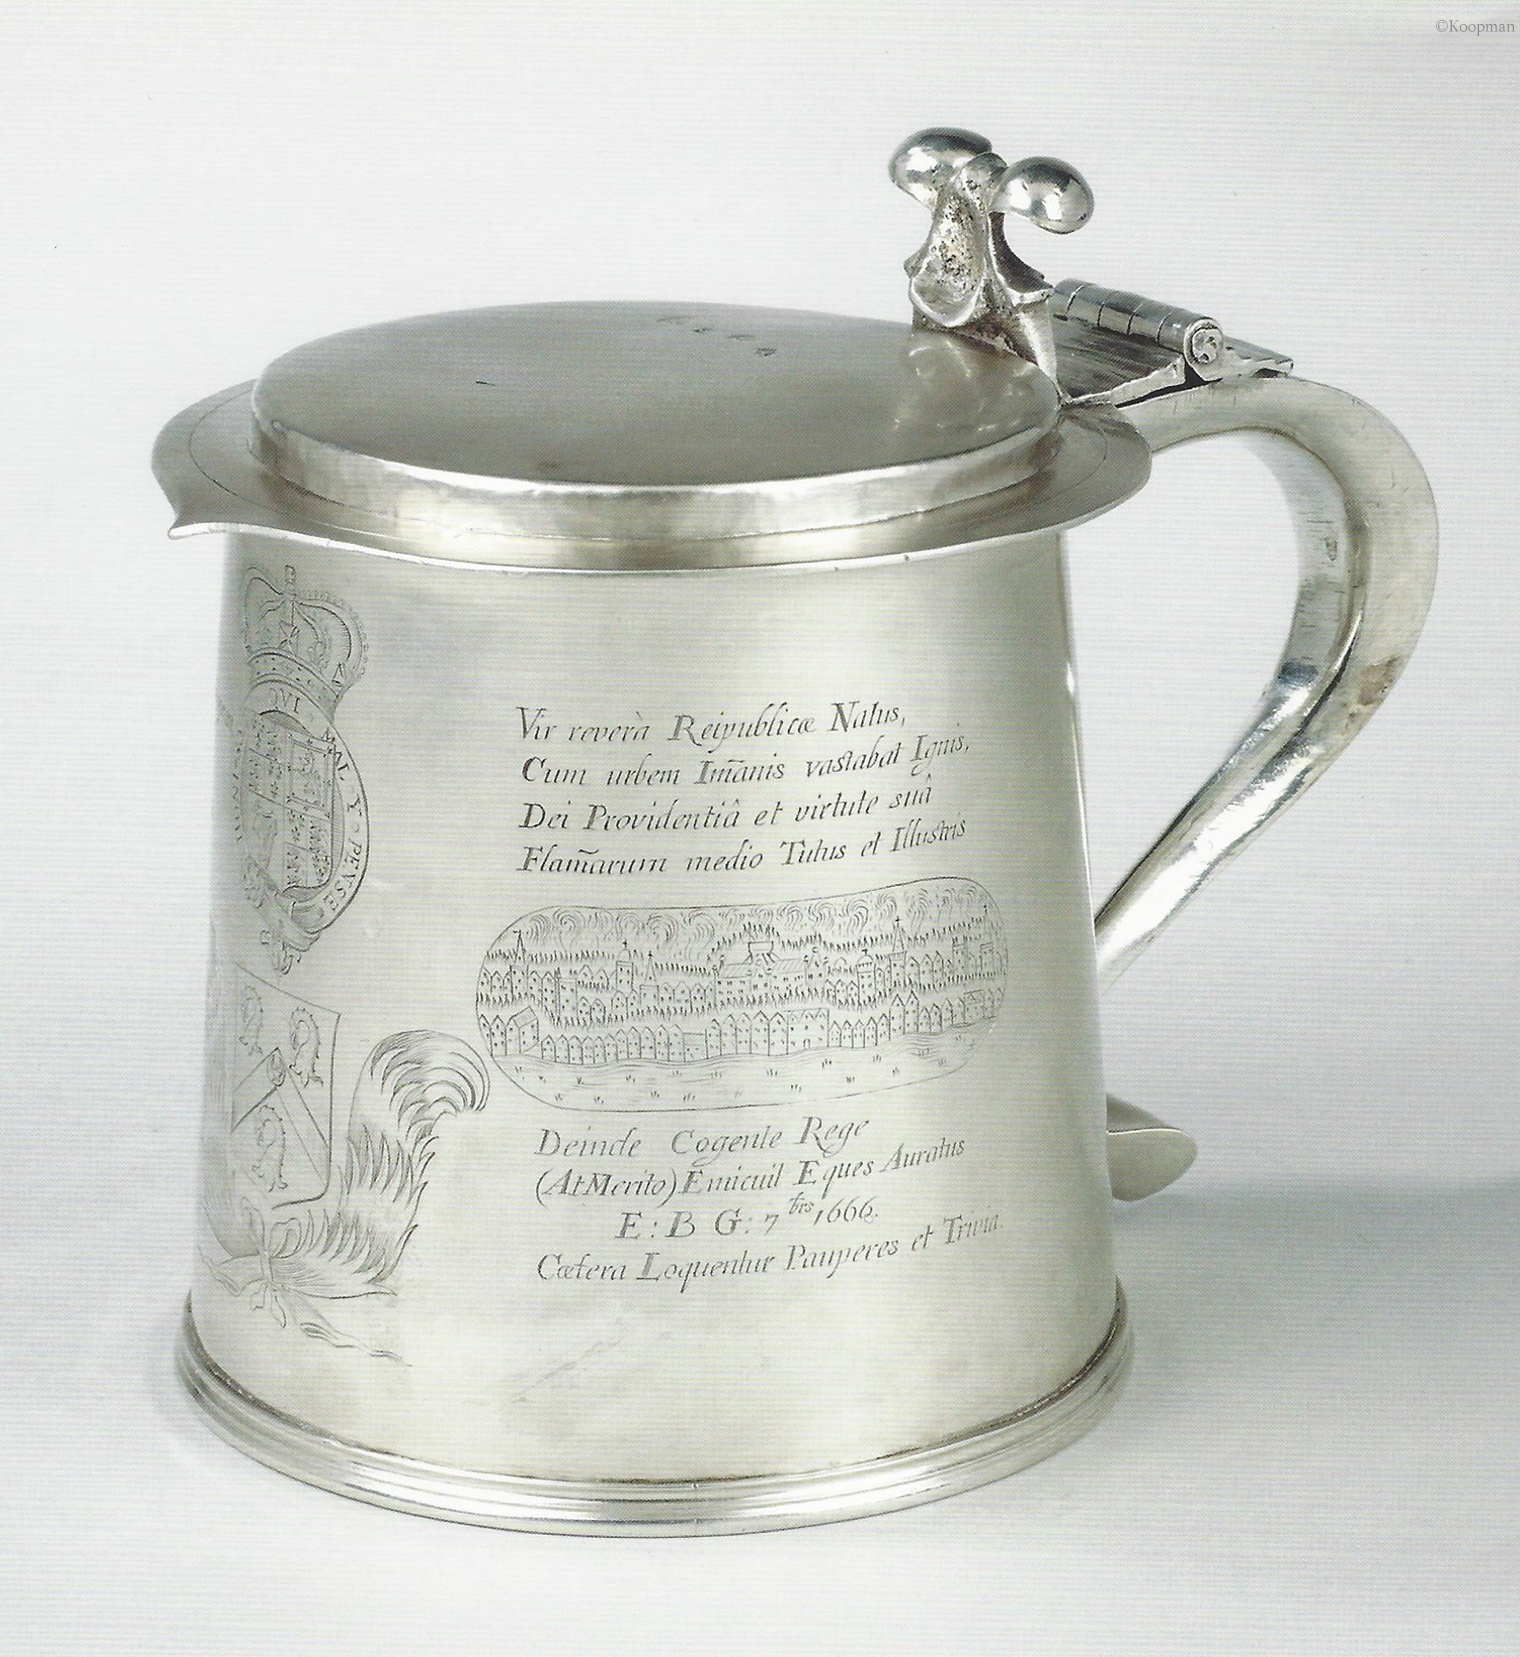 The Fire of London Flagon & Tankard